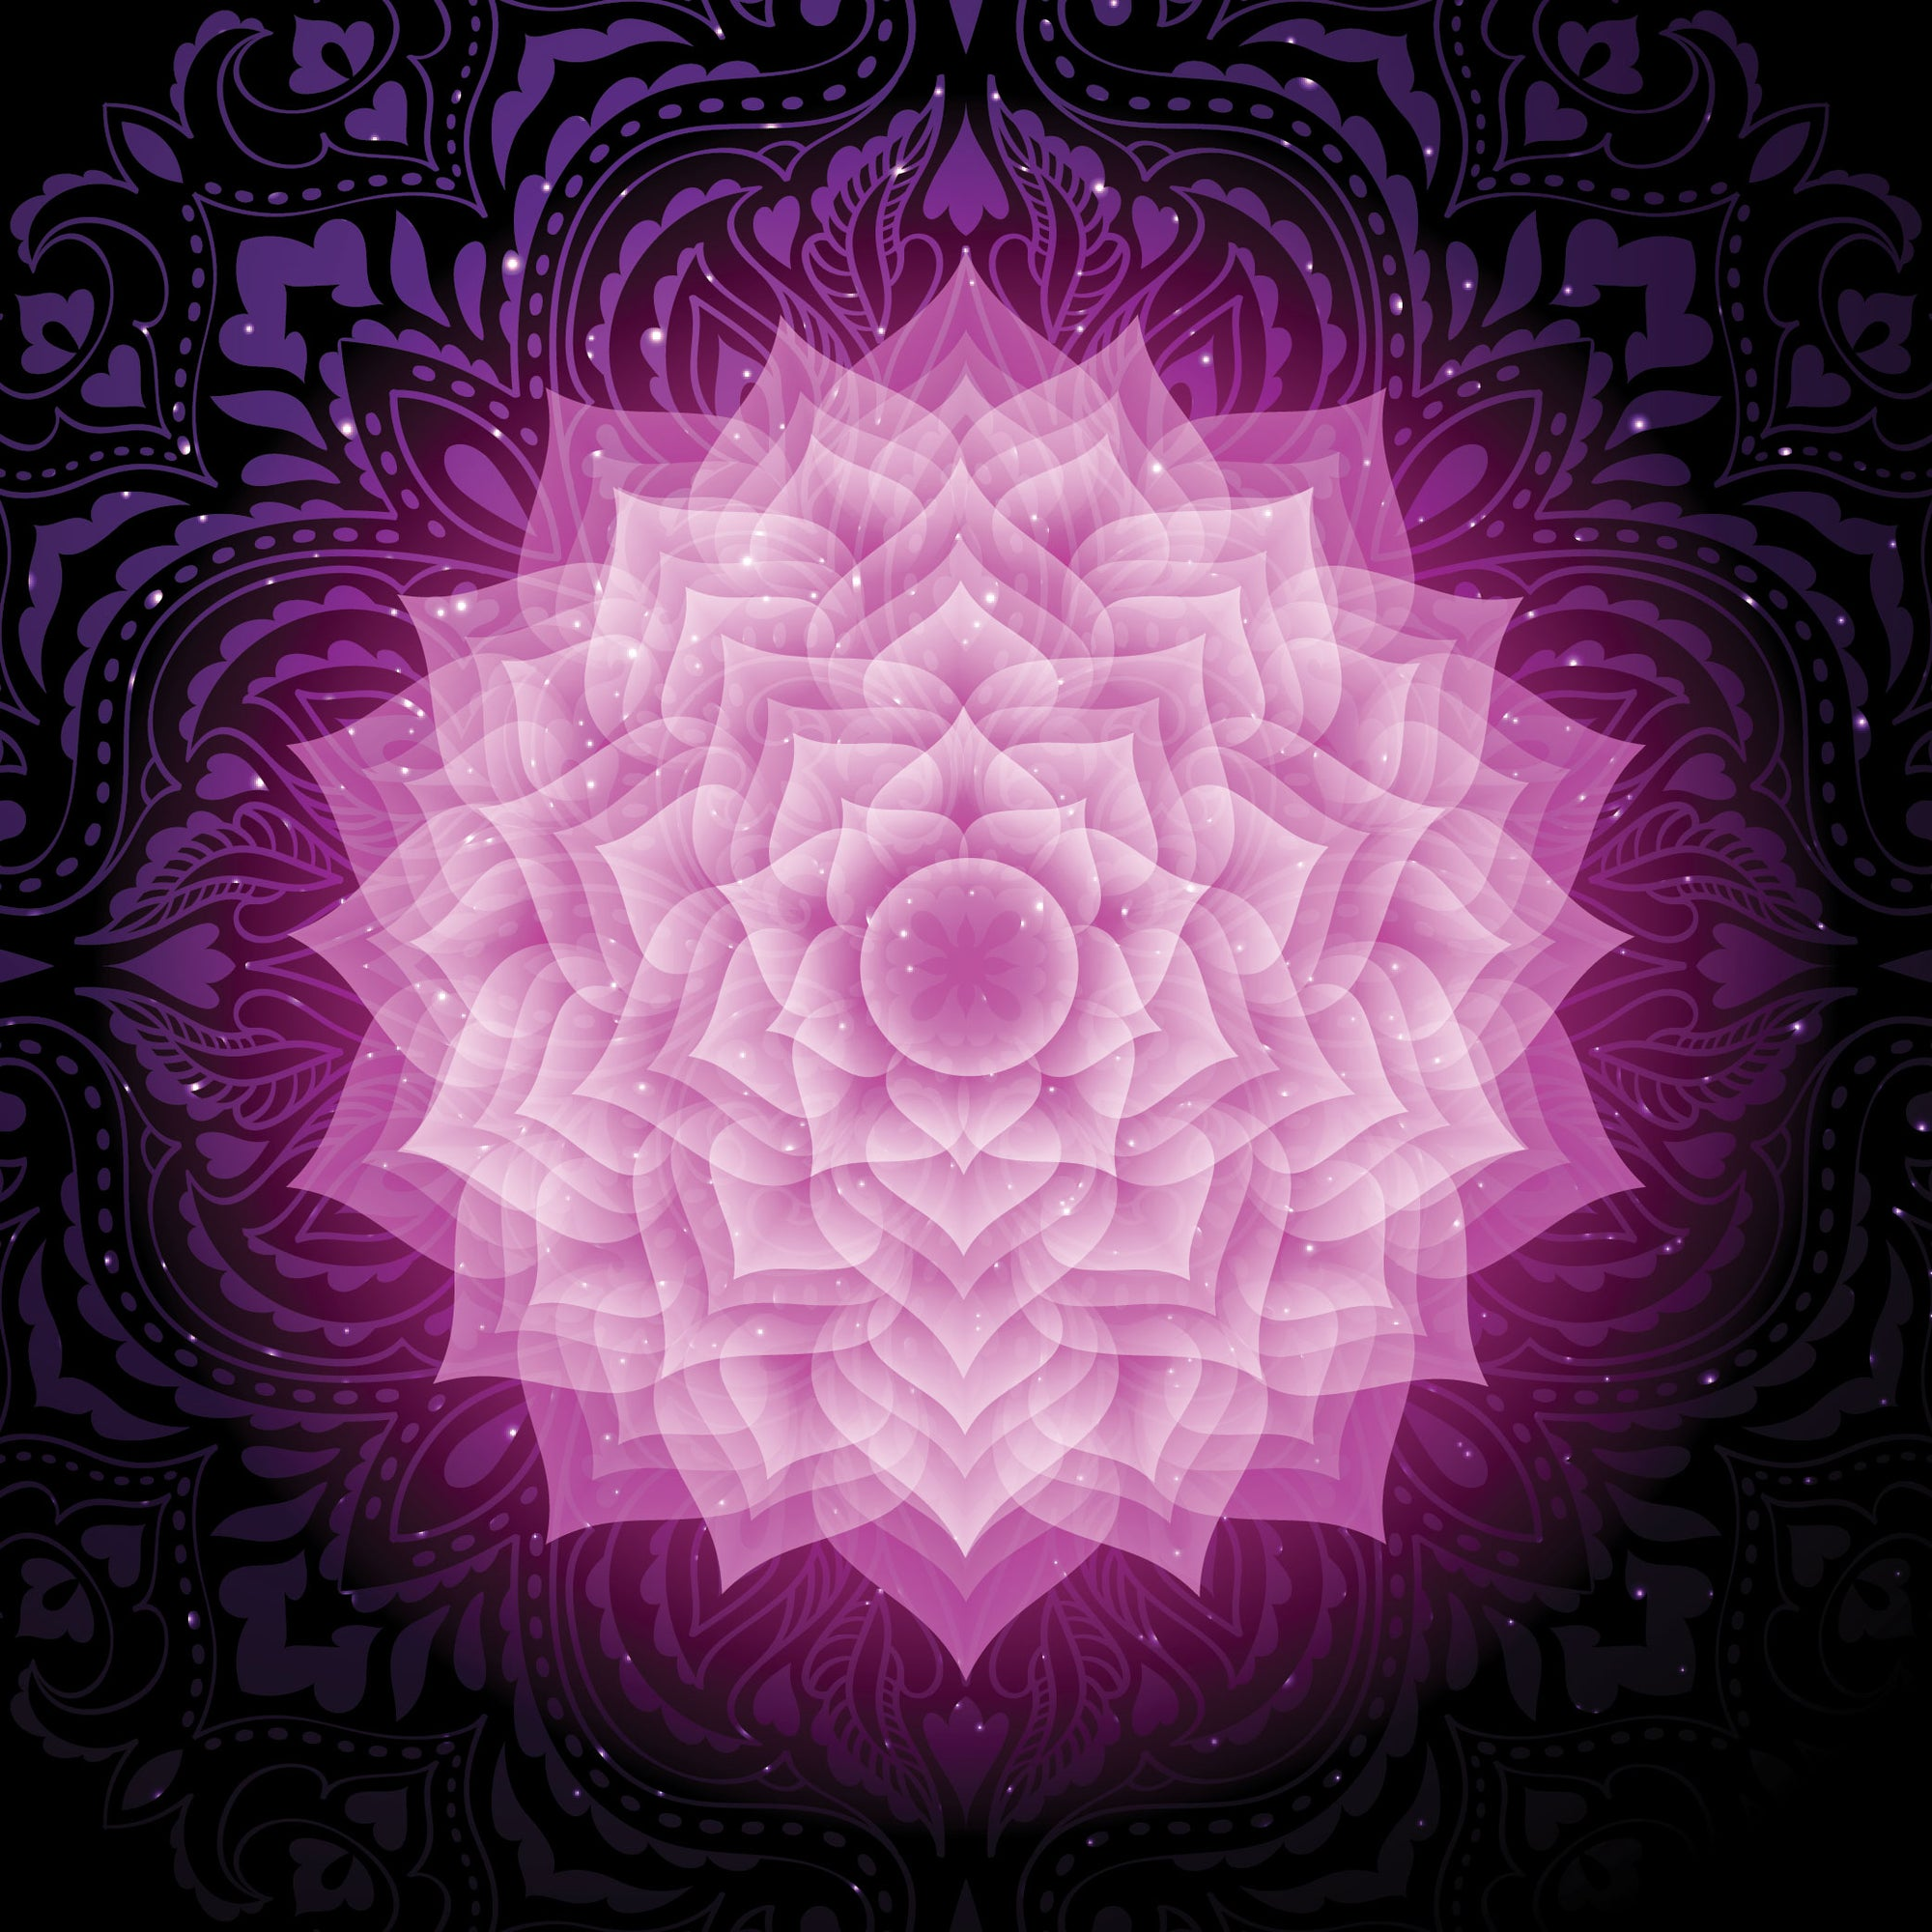 Crown Chakra Opening Meditation by Teal Swan